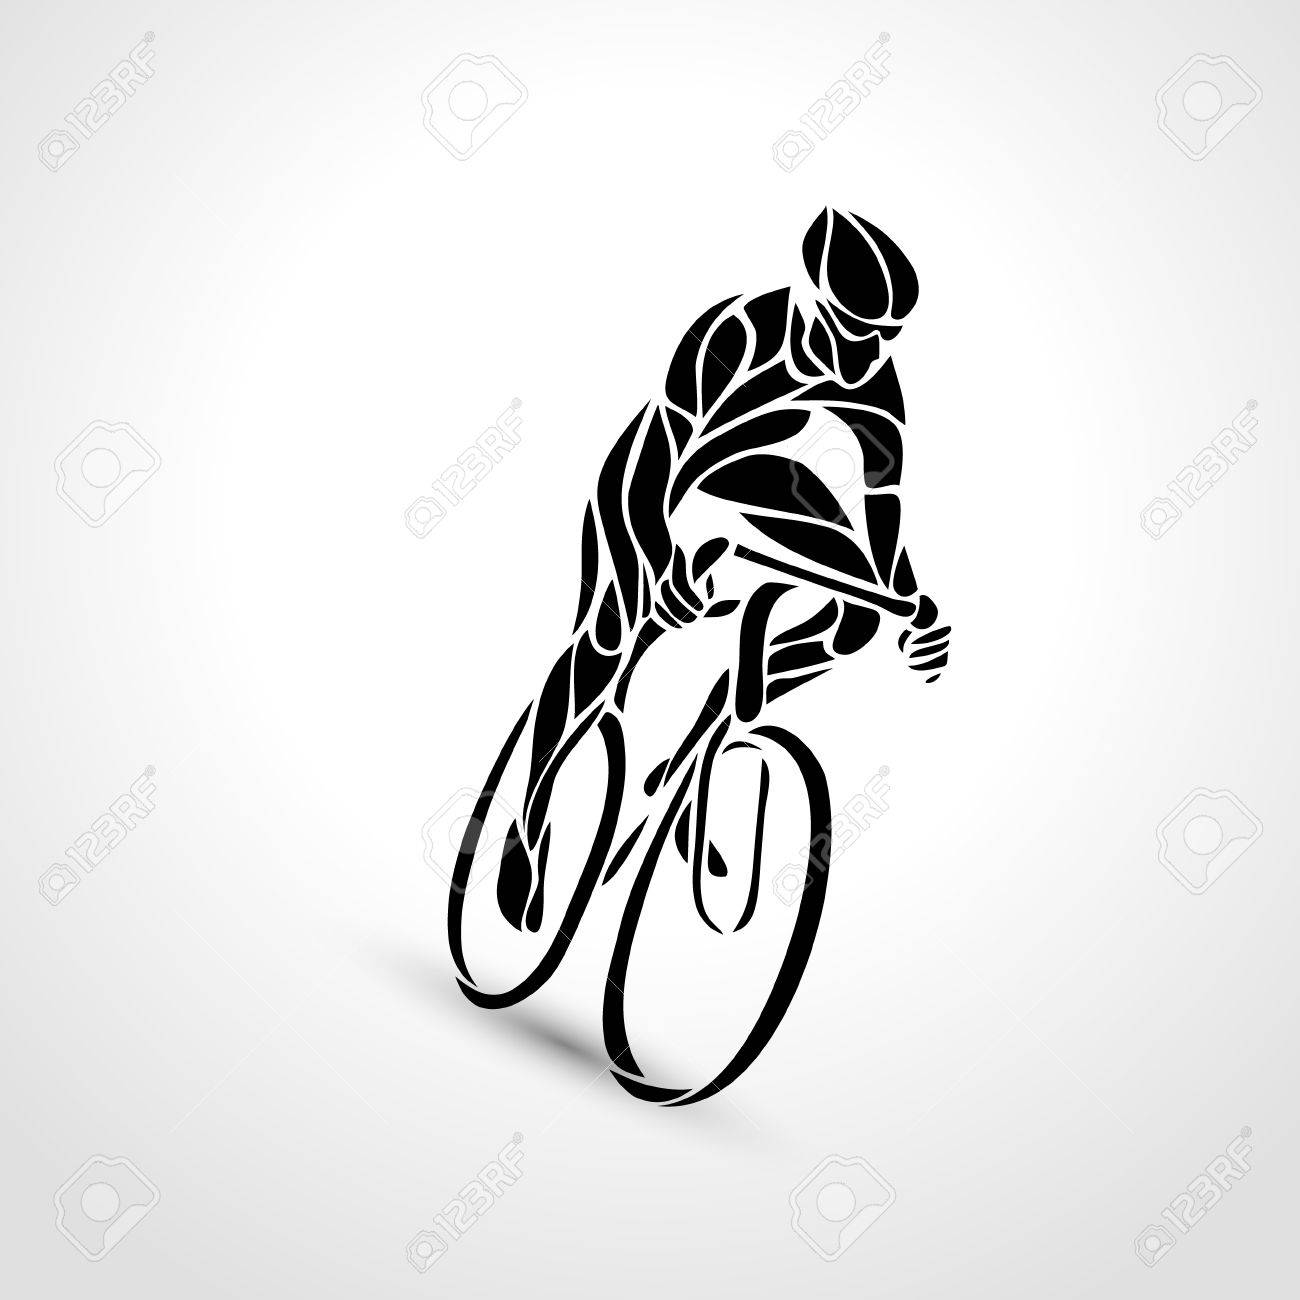 Abstract creative silhouette of bicyclist. Black cyclist wave style logo. Front view. Vector illustration of bike - 67829241